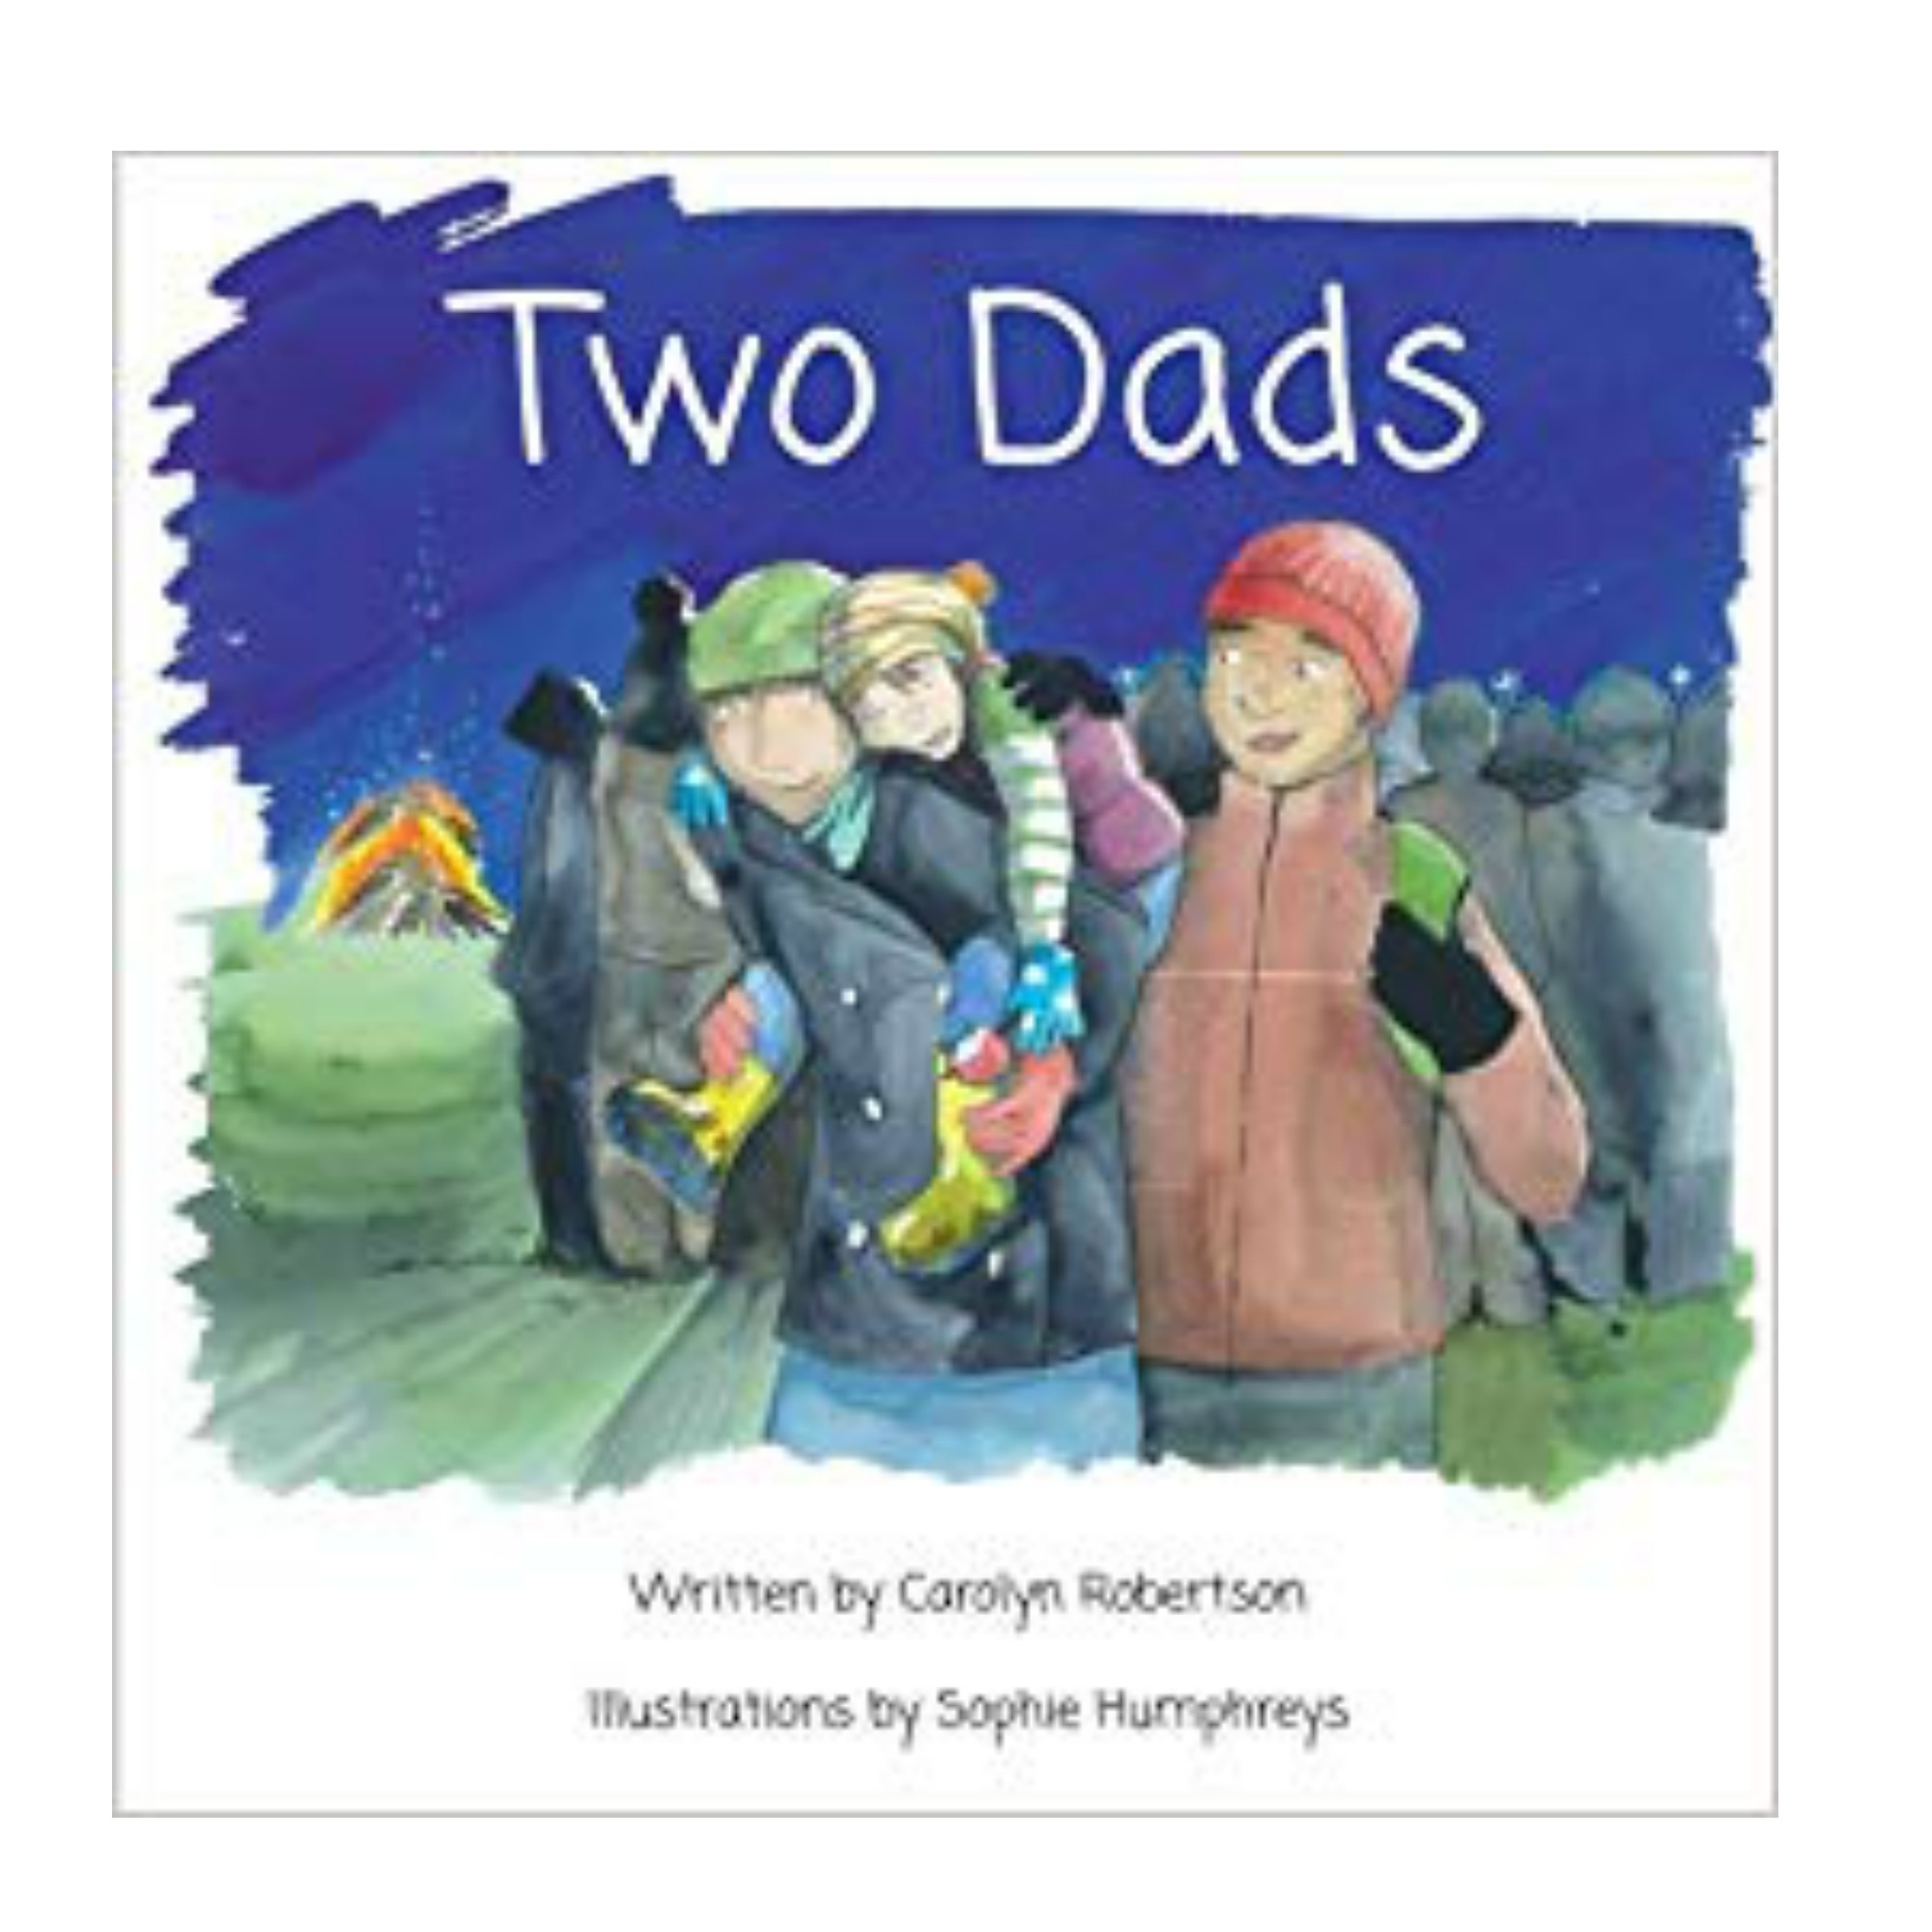 TWO DADS   Another great book that talks about how great it is to have not one, but two dads.